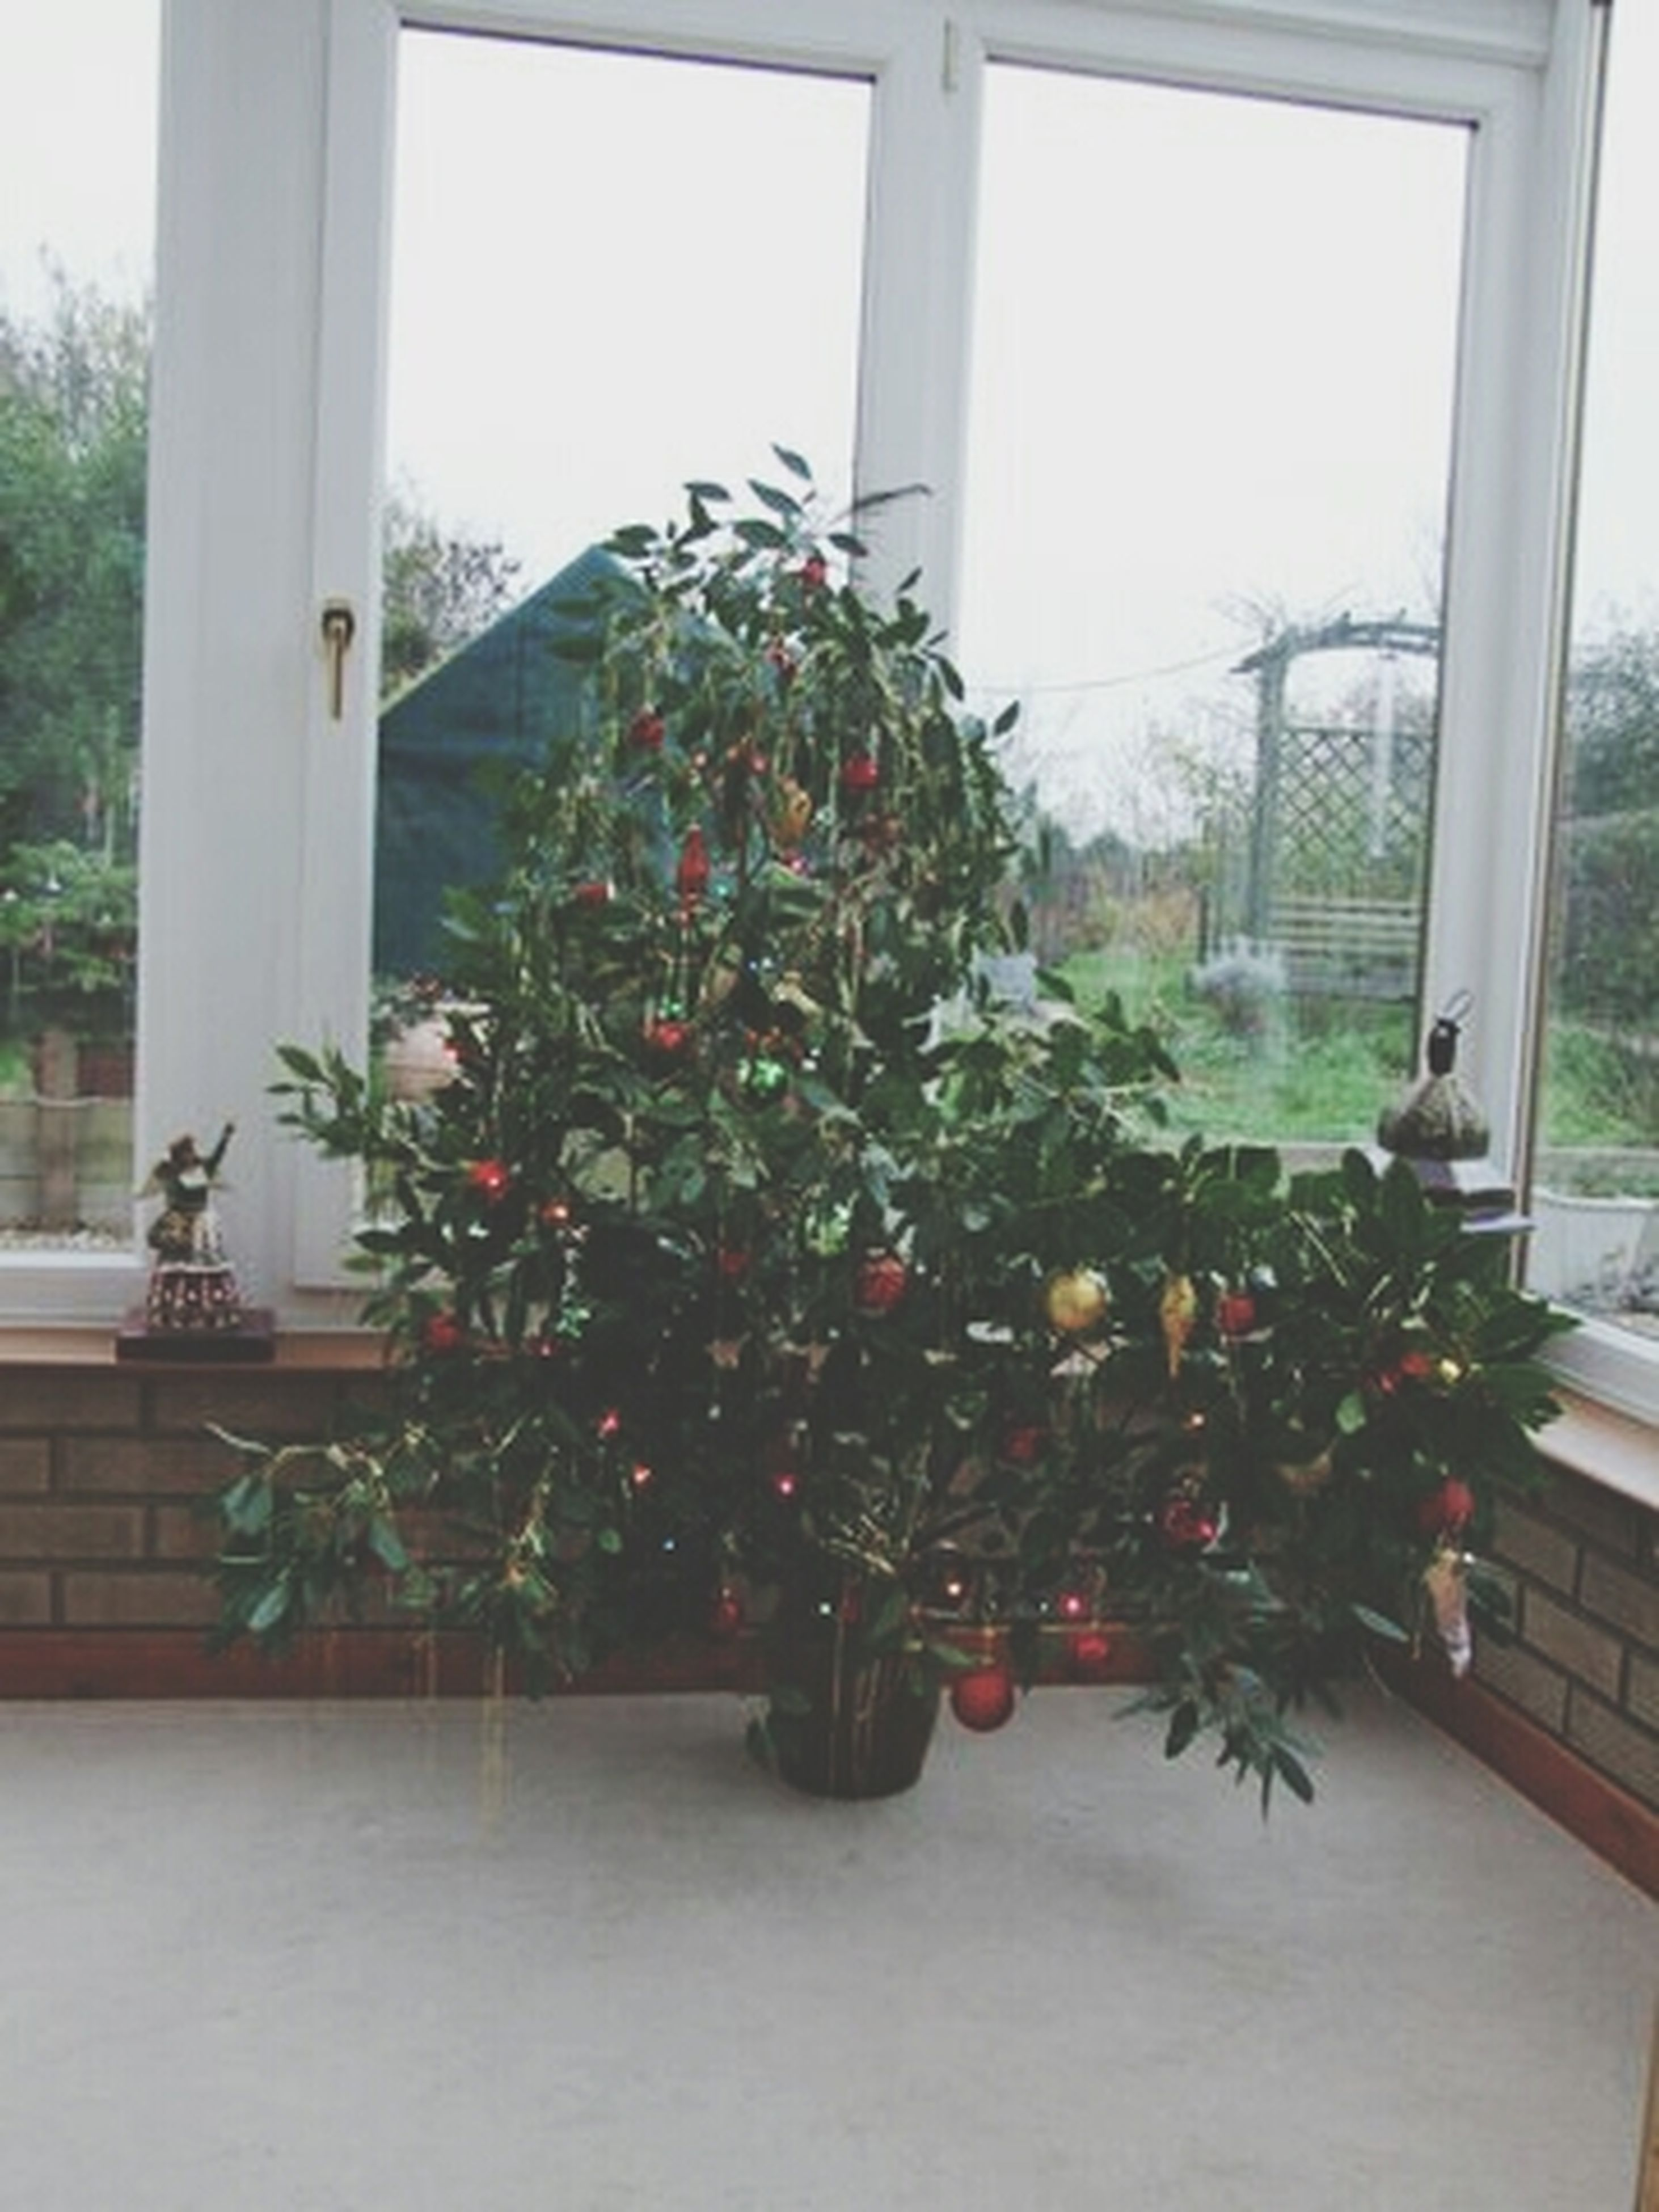 window, flower, potted plant, plant, growth, indoors, freshness, glass - material, house, flower pot, window sill, vase, home interior, nature, fragility, built structure, table, transparent, tree, day